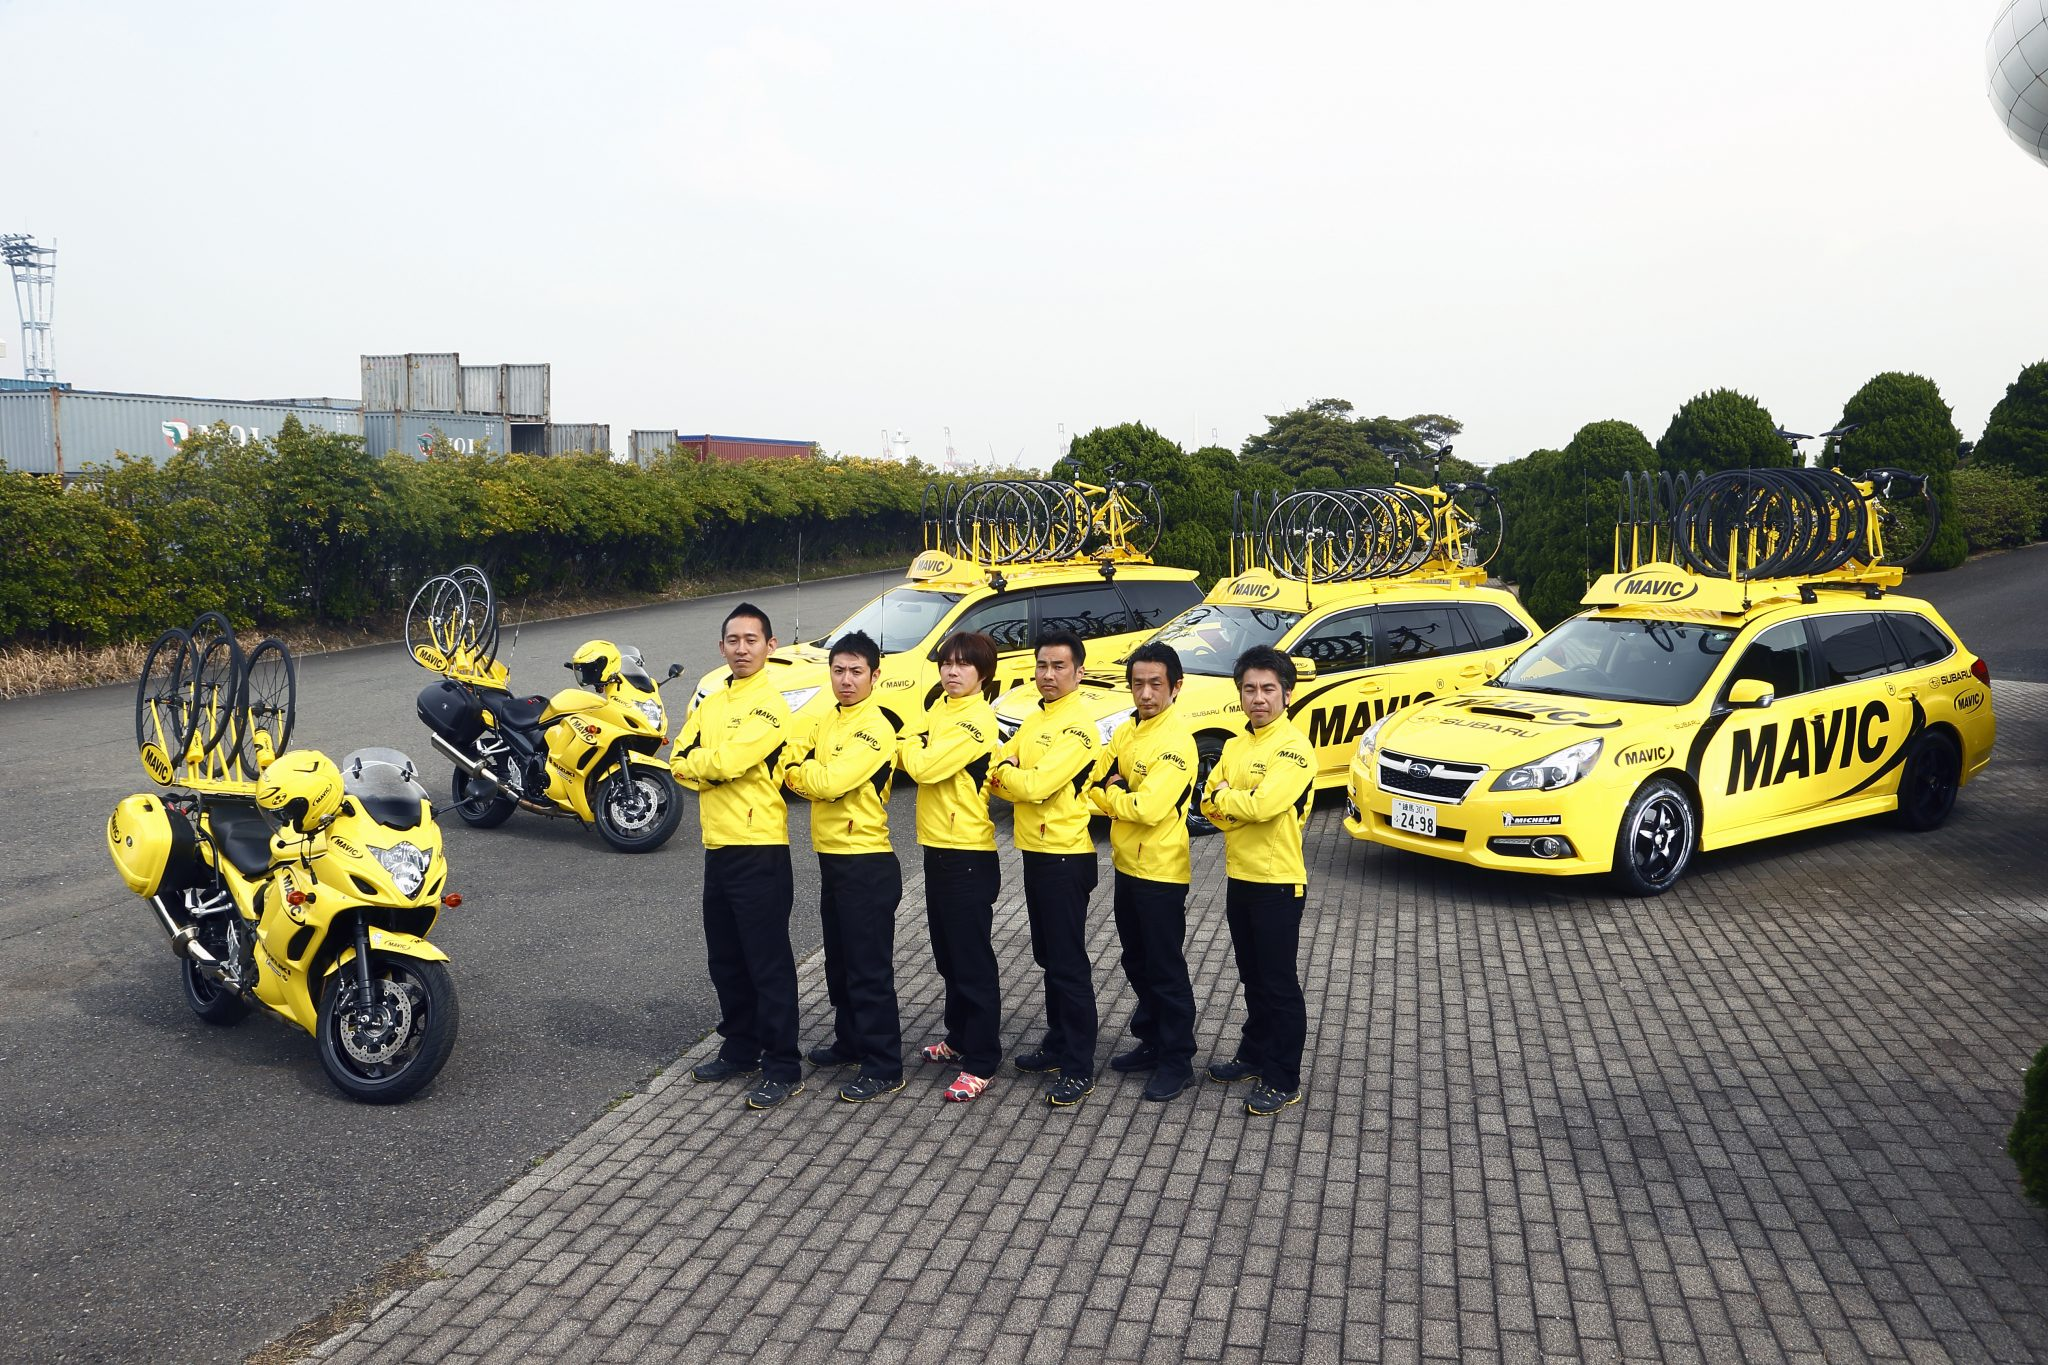 MOTO MAVIC CARS_Staff